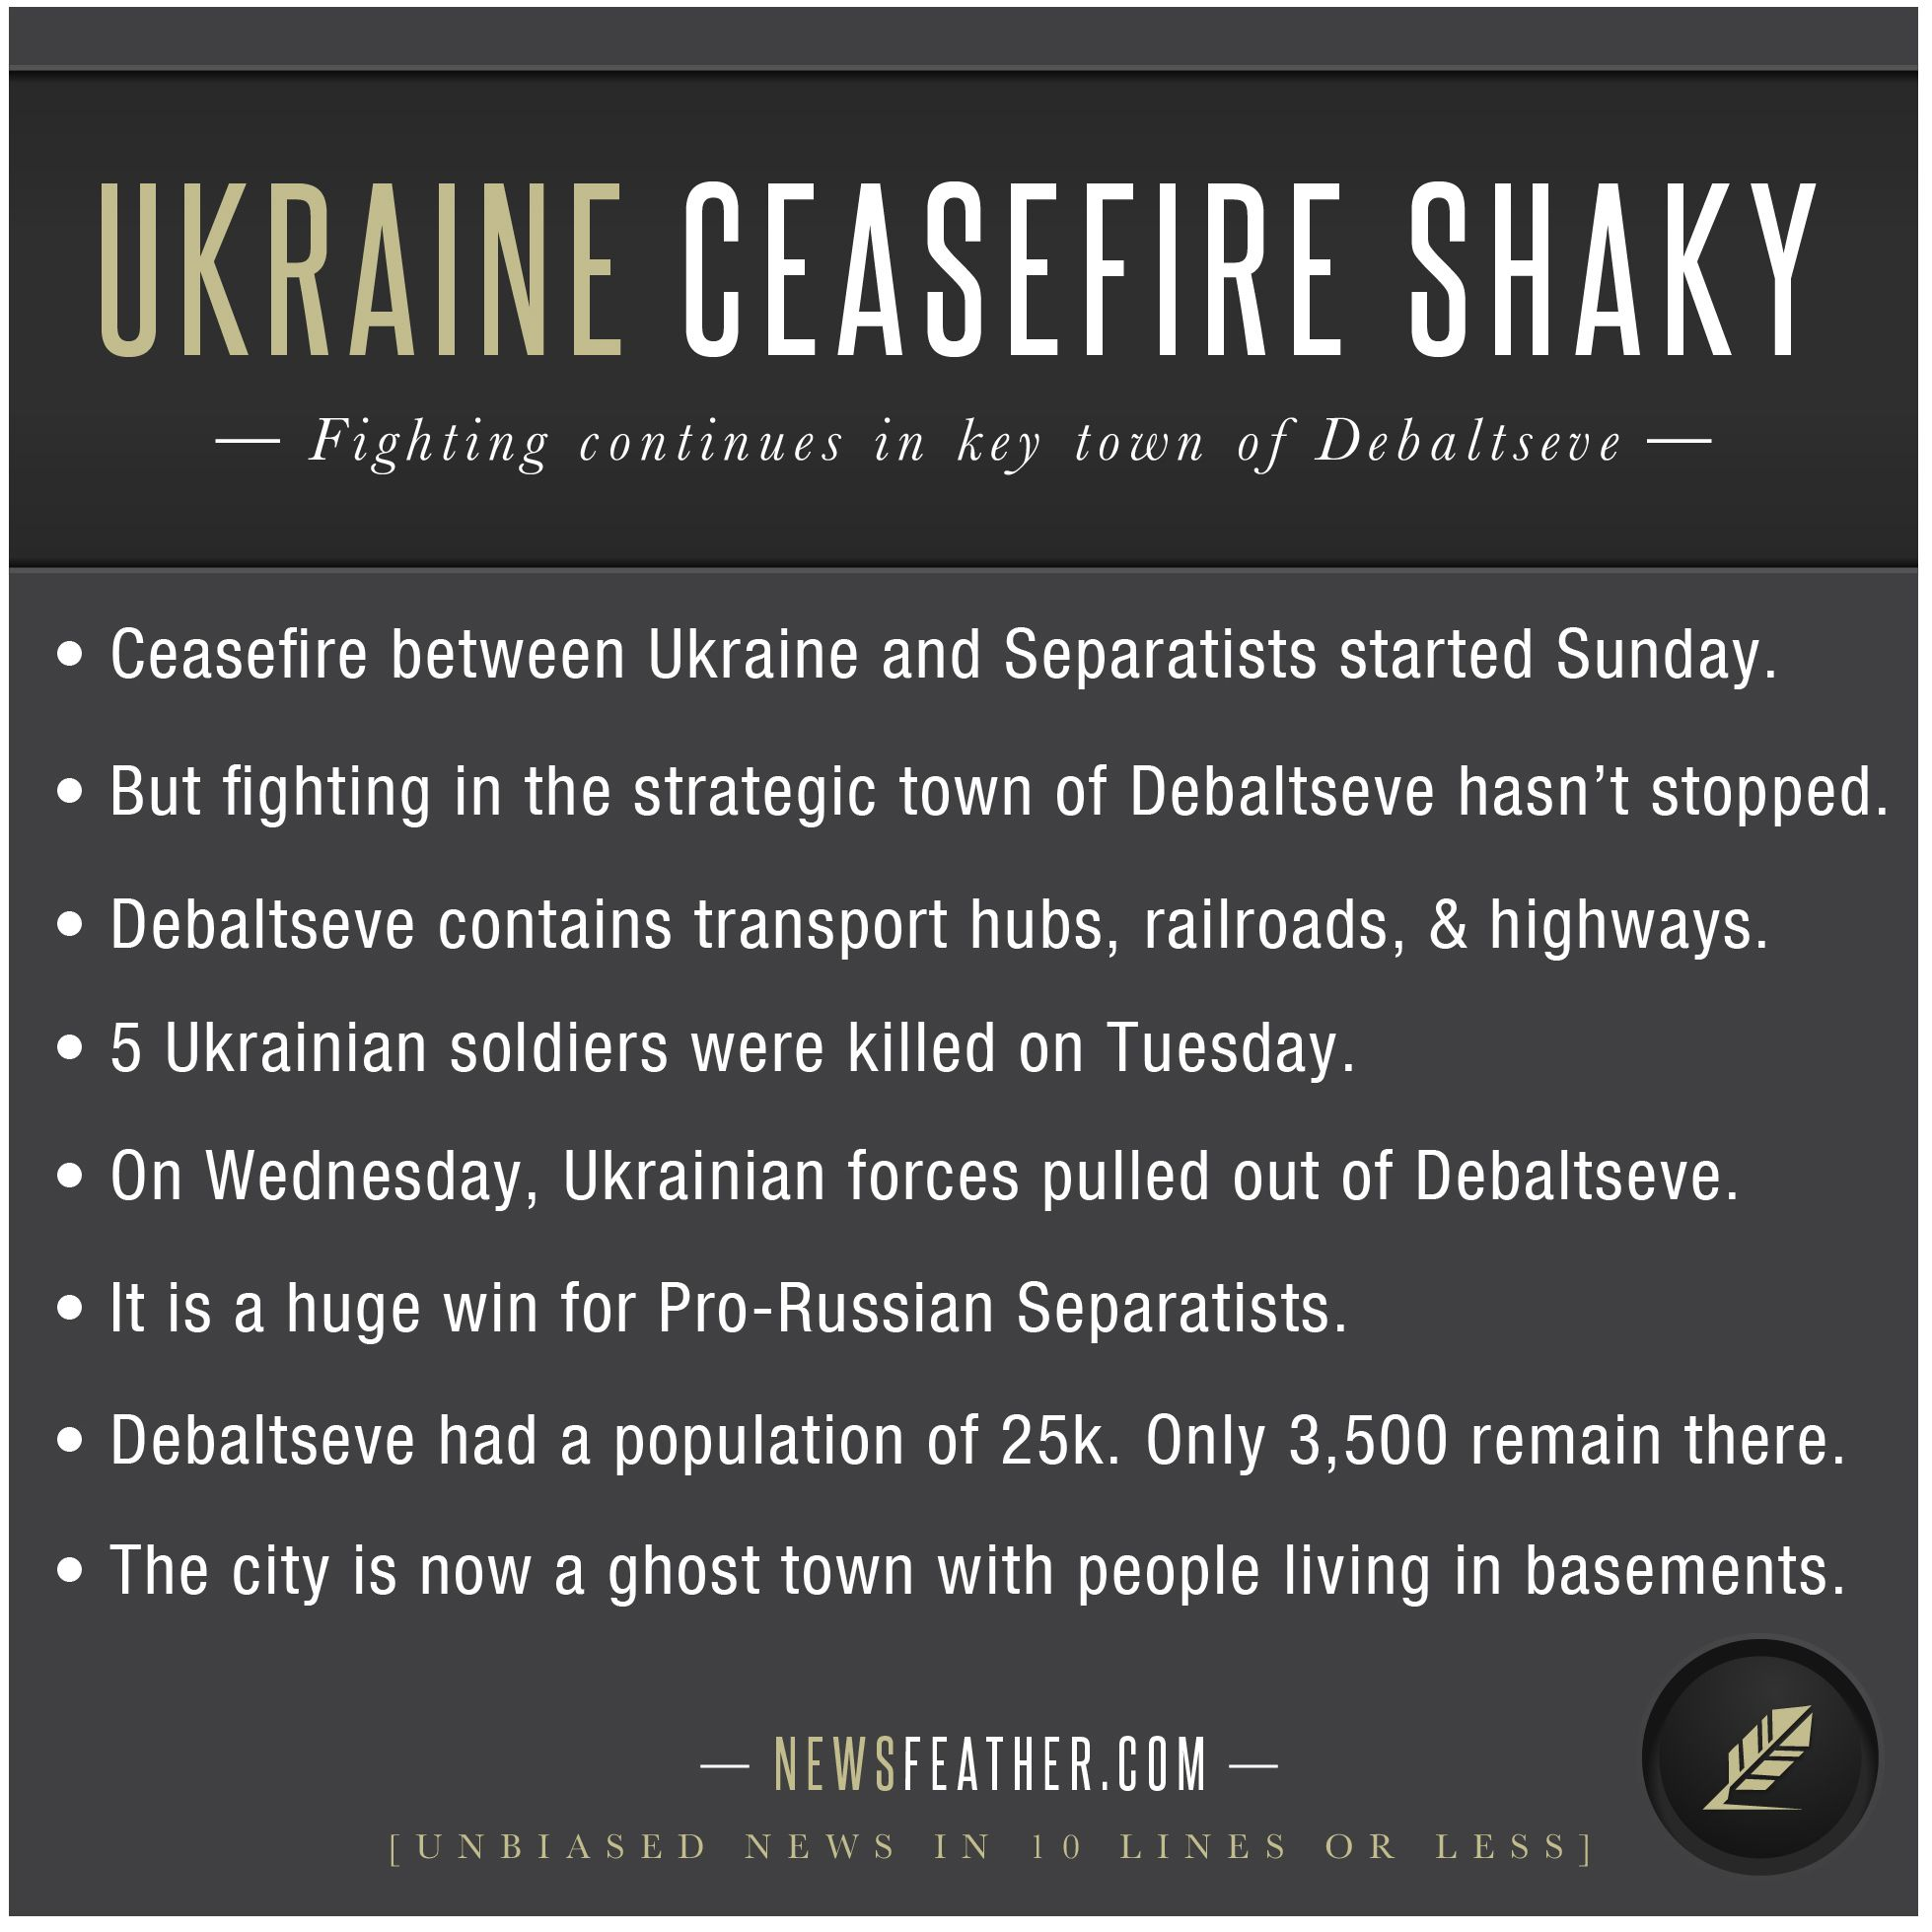 Fighting between Ukraine and Pro-Russian Separatists continues after ceasefire.